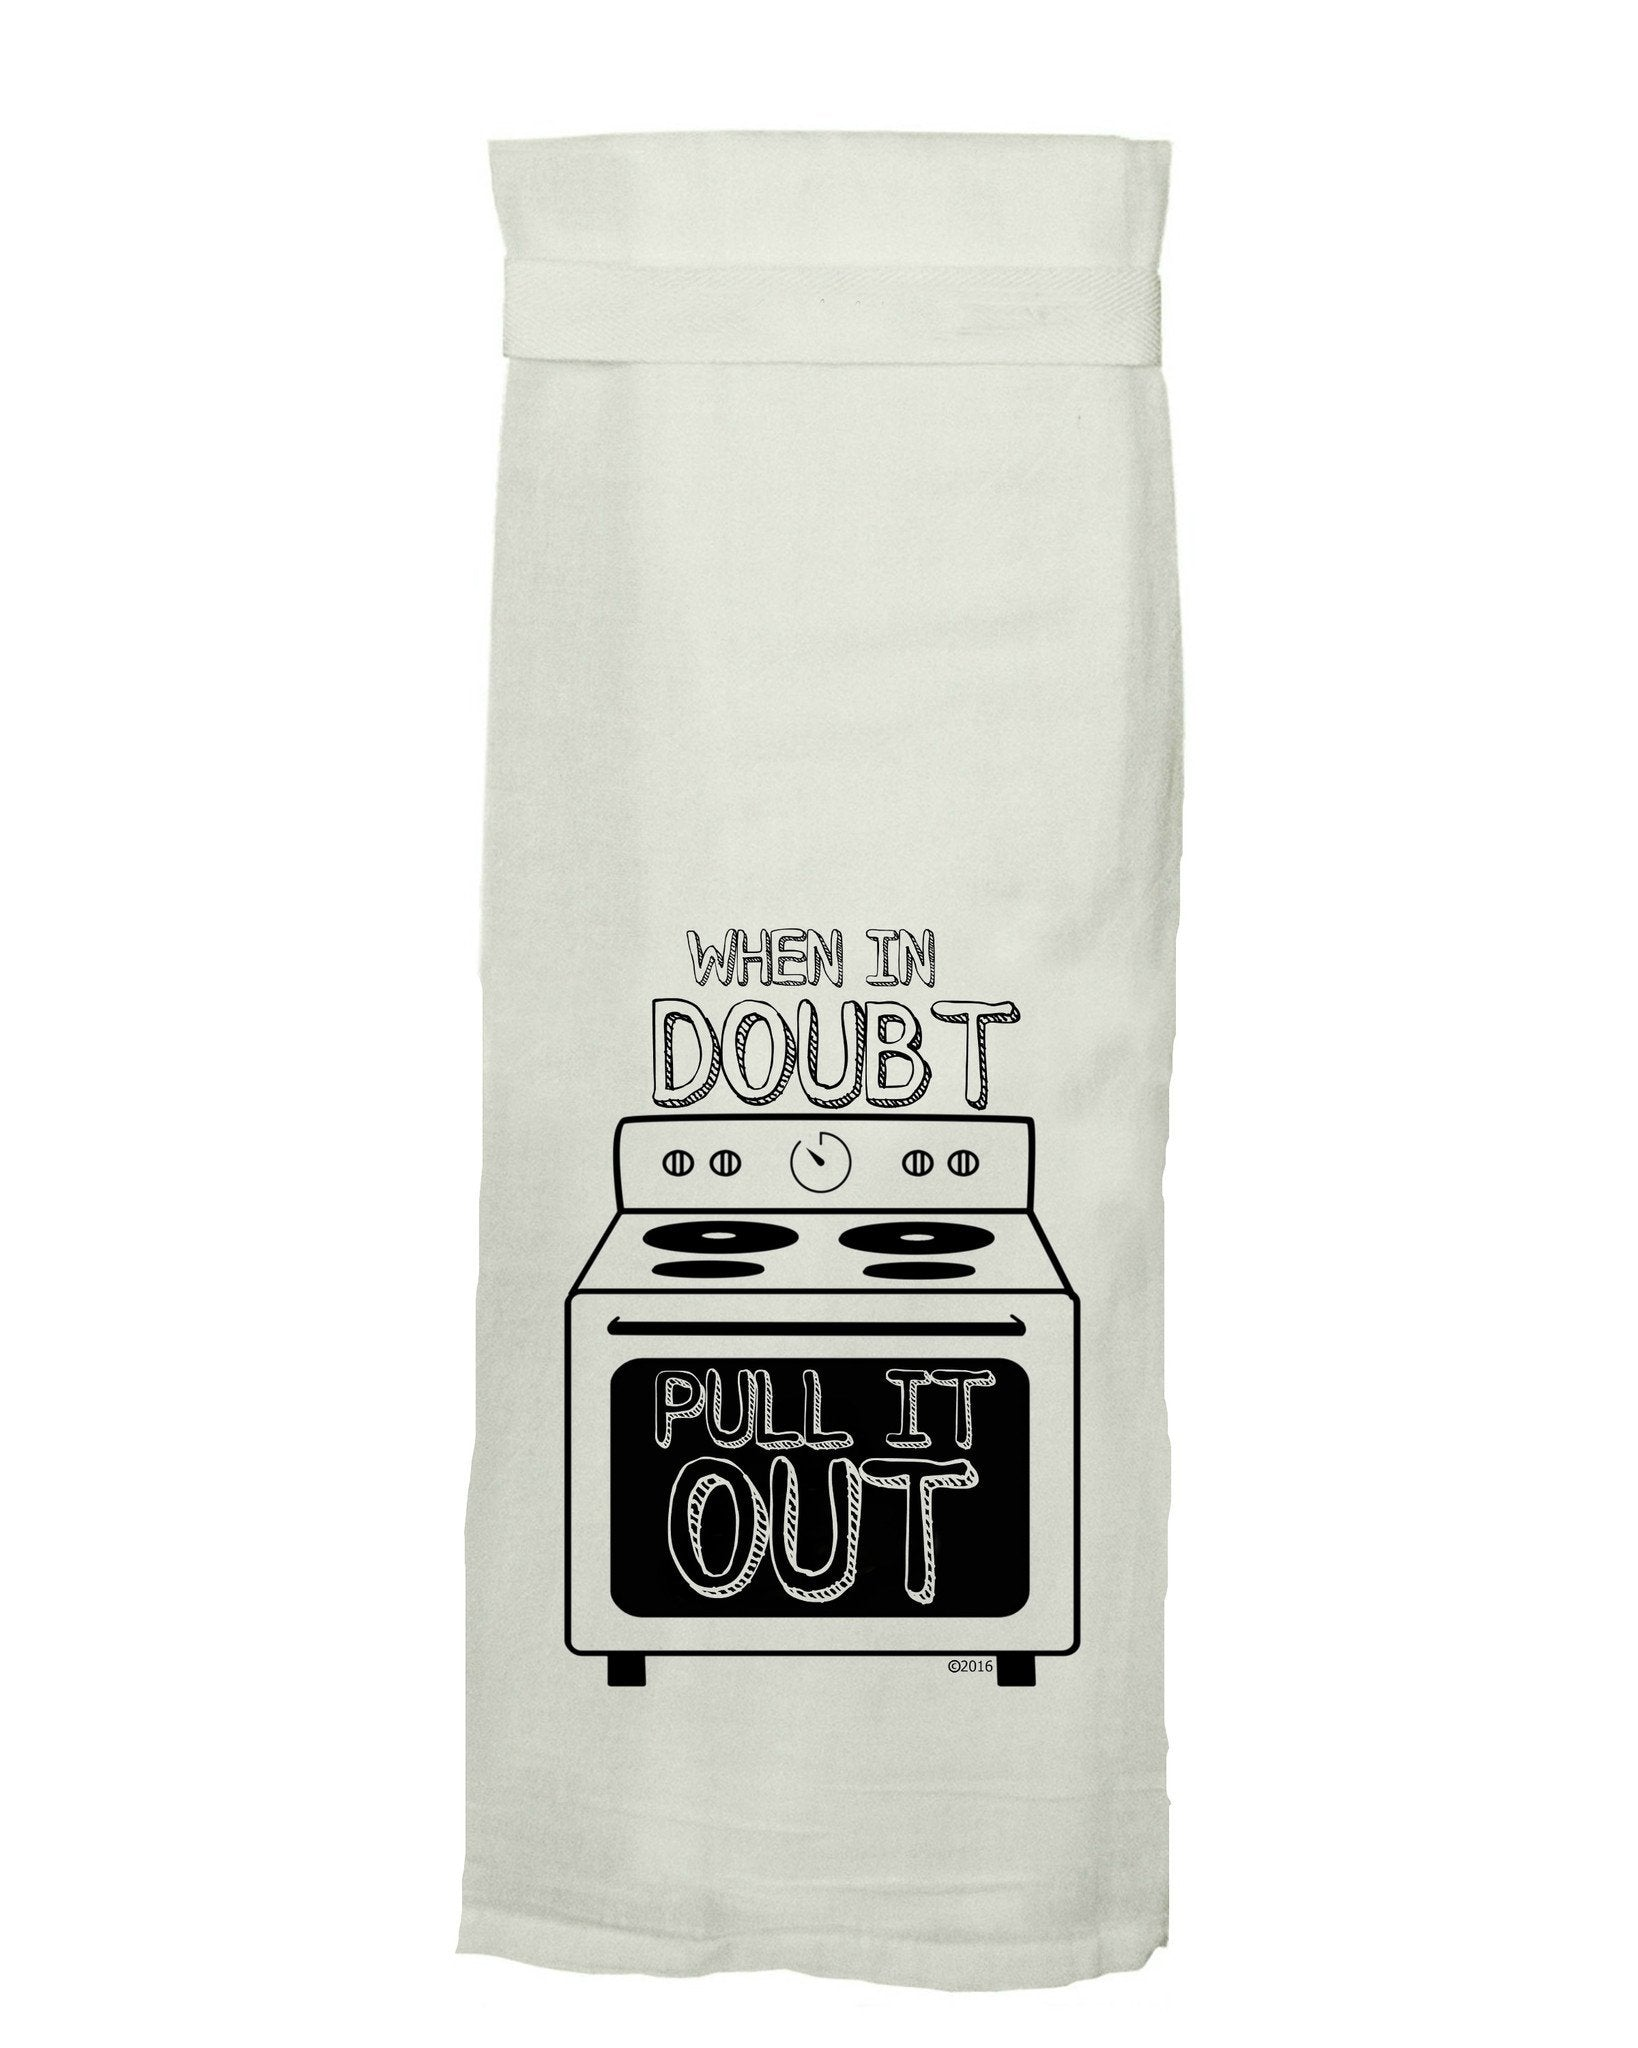 Buy When In Doubt Flour Sack Tea Towel from Walking Pants Curiosities, the Most un-General Gift Store in Downtown Memphis, Tennessee!